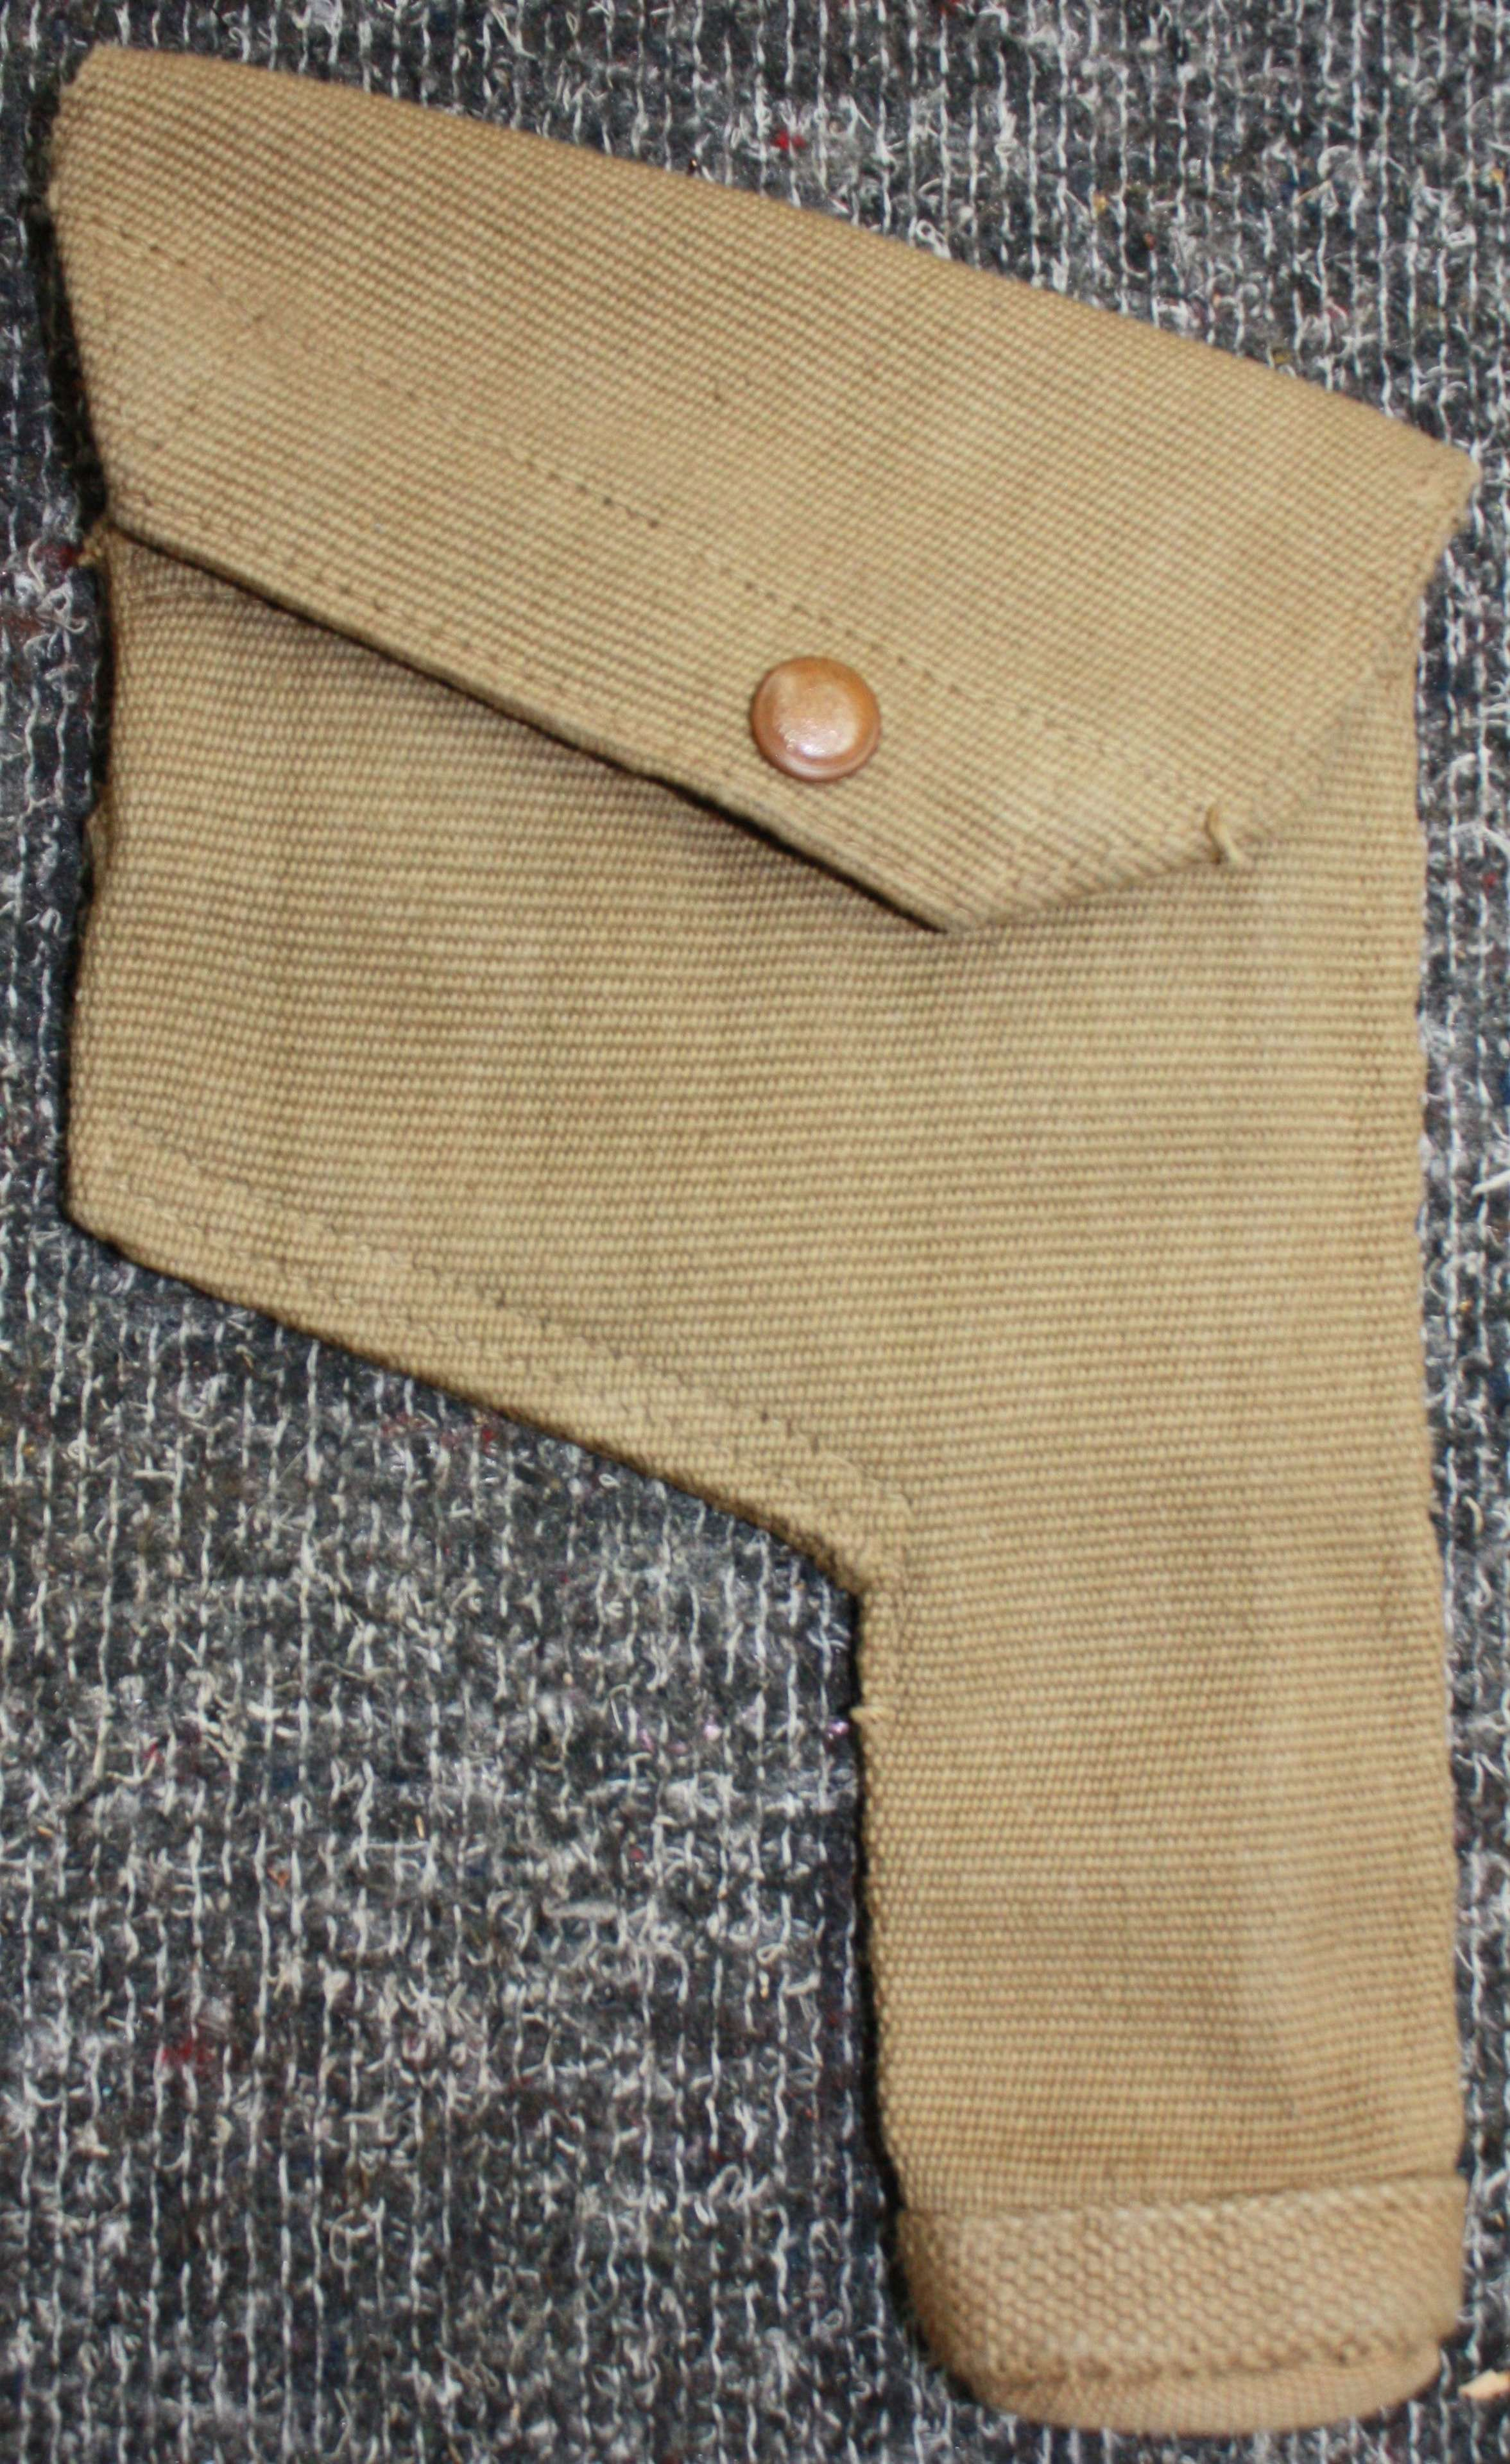 A MINT 1942 DATED 37 PATTERN WEBBING HOLSTER